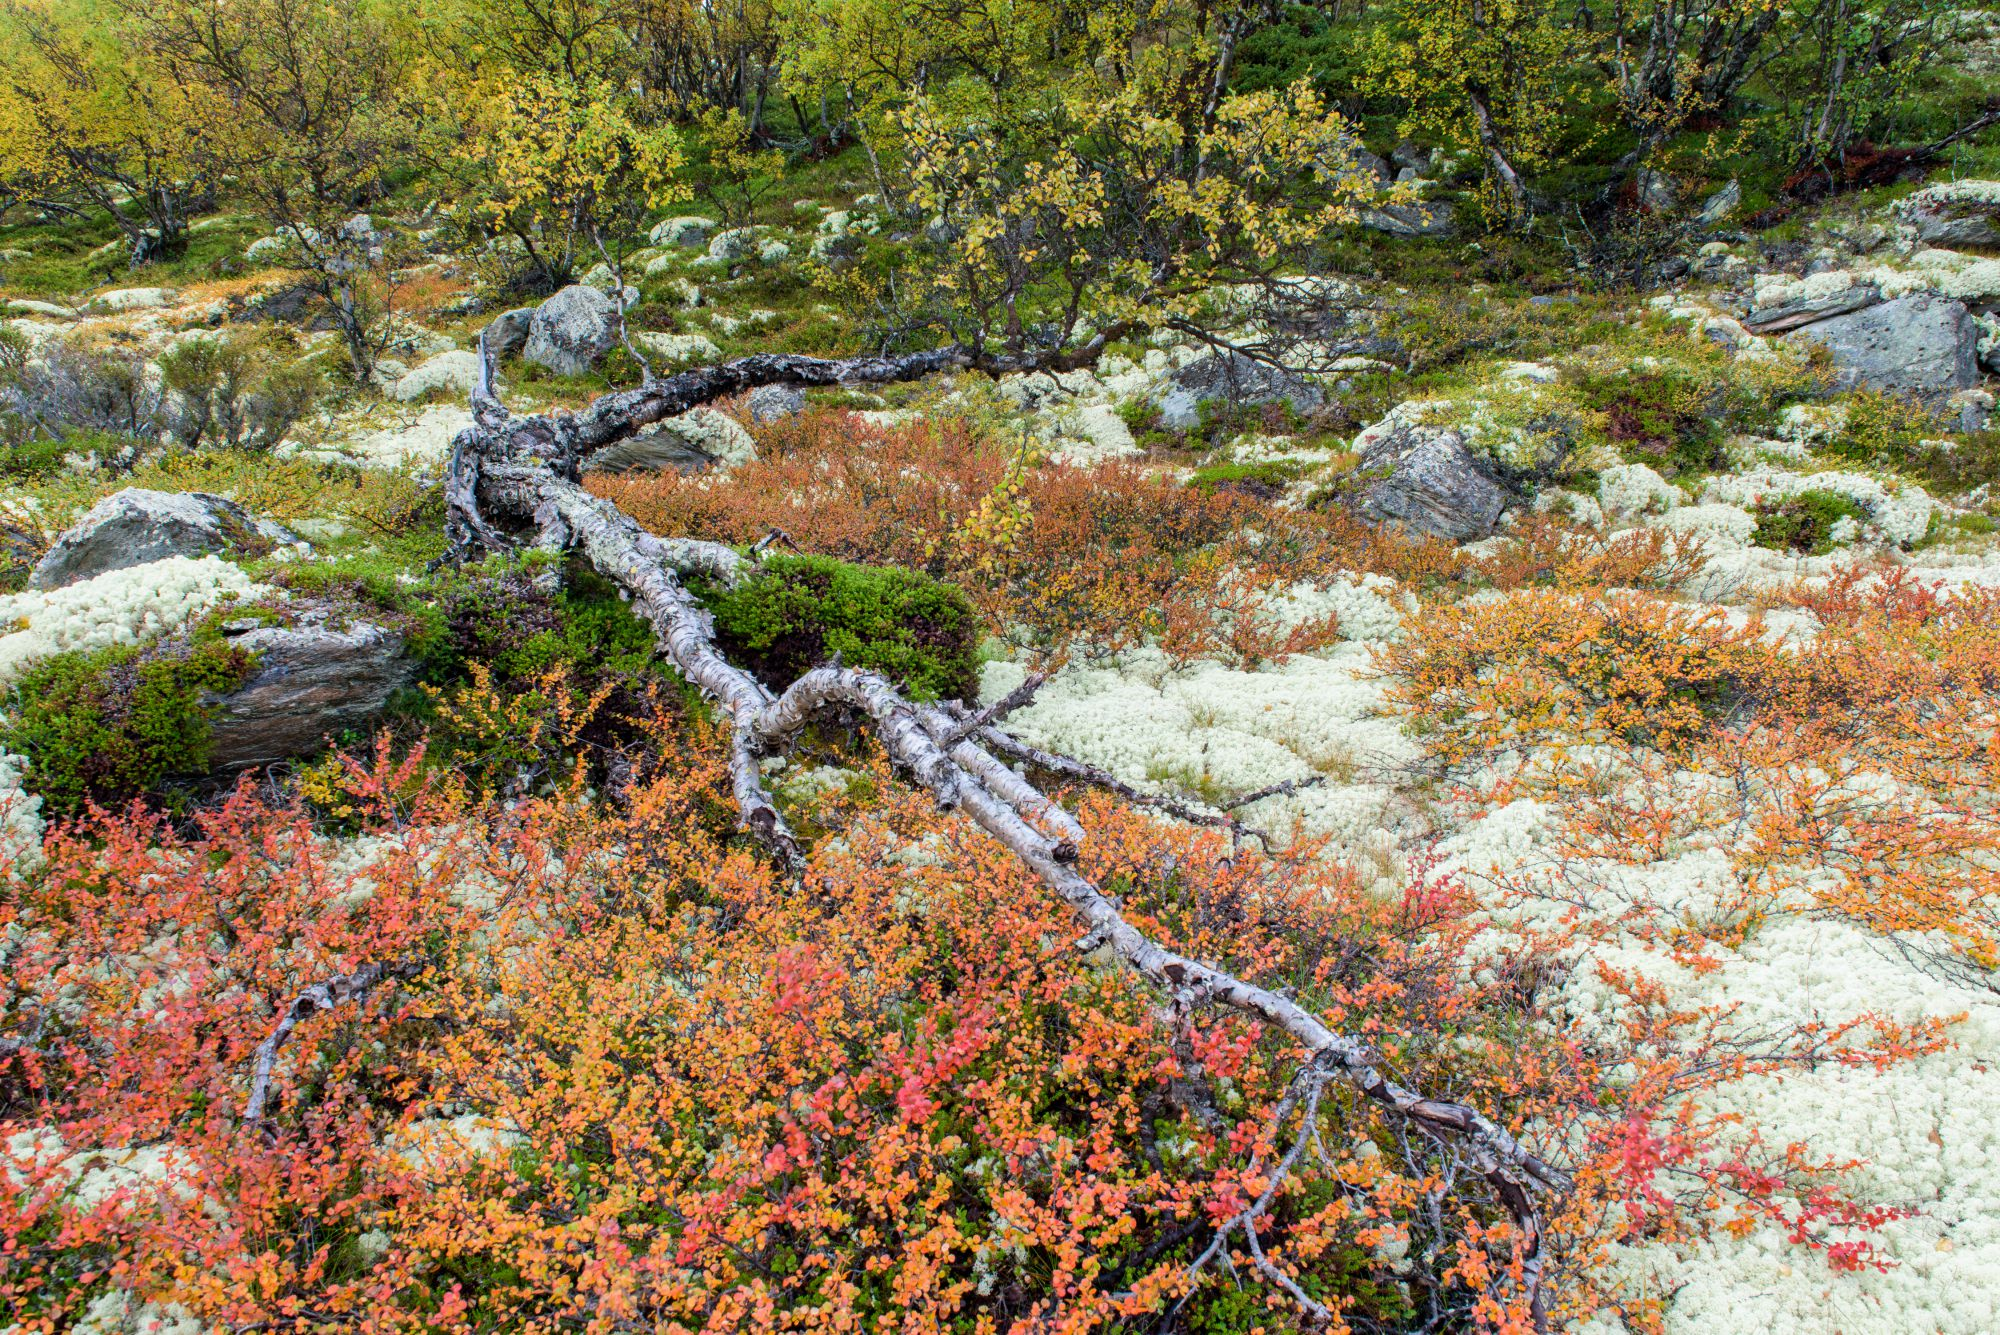 Colourful vegetation in Rondane